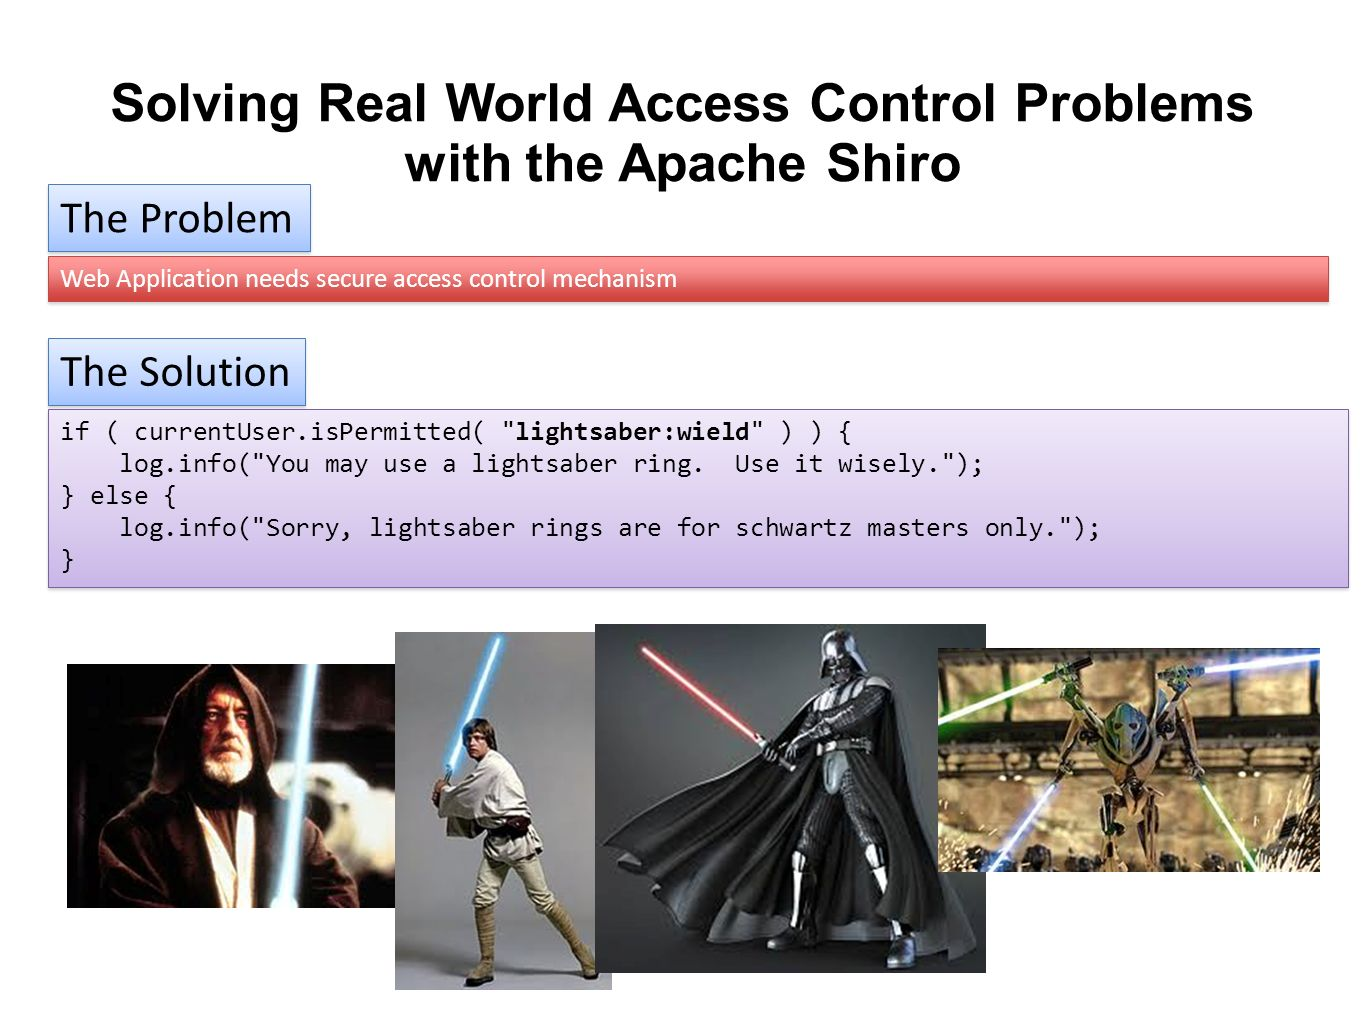 Solving Real World Access Control Problems with the Apache Shiro